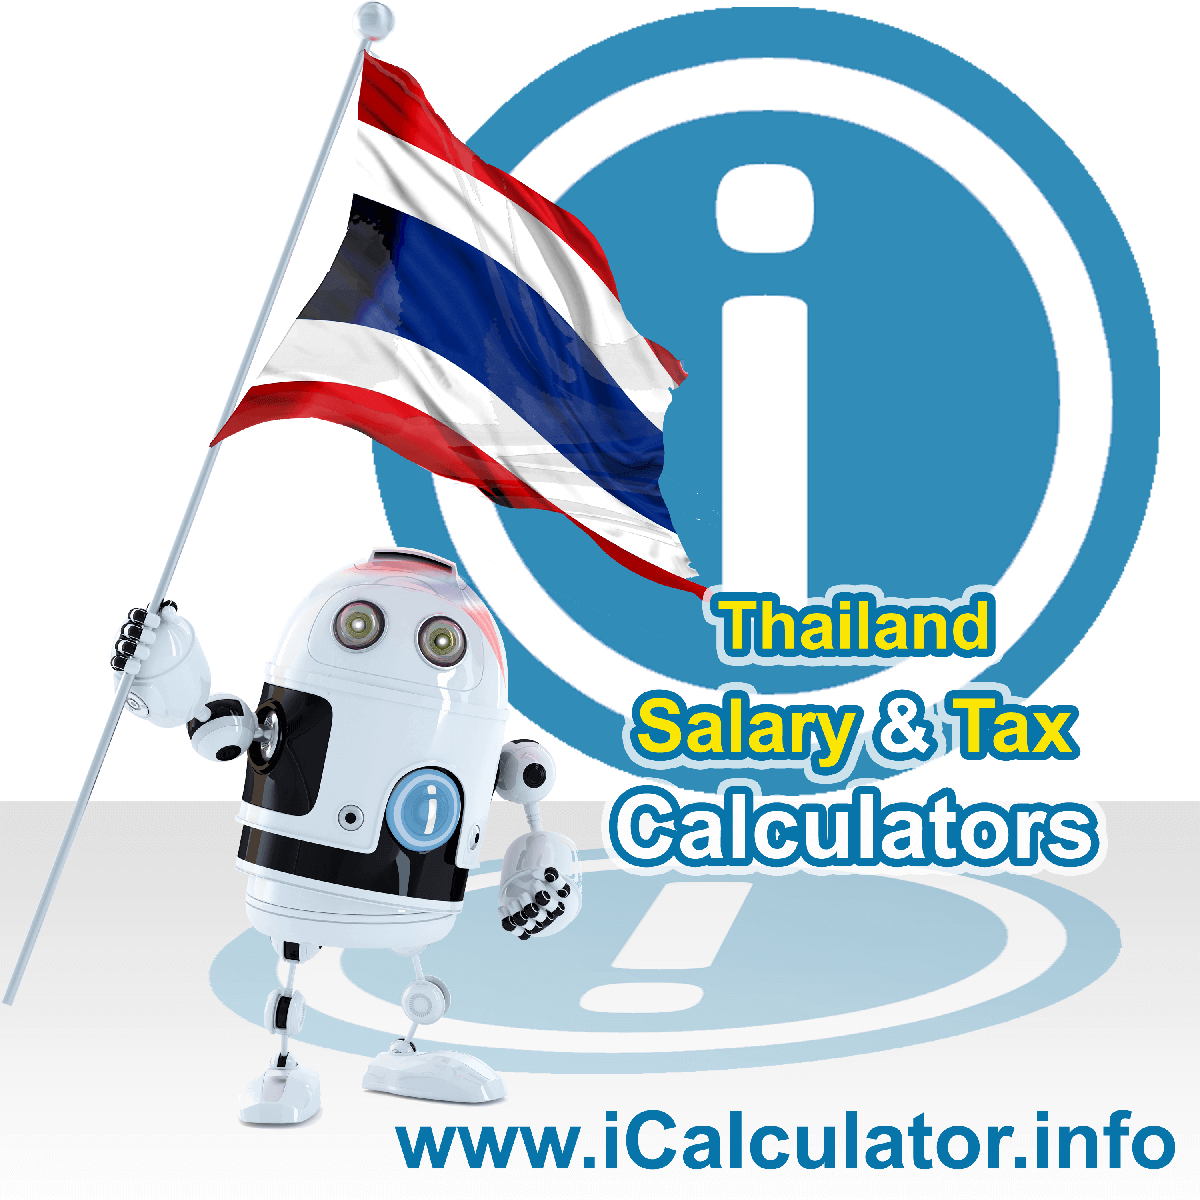 Thailand Tax Calculator. This image shows the Thailand flag and information relating to the tax formula for the Thailand Salary Calculator